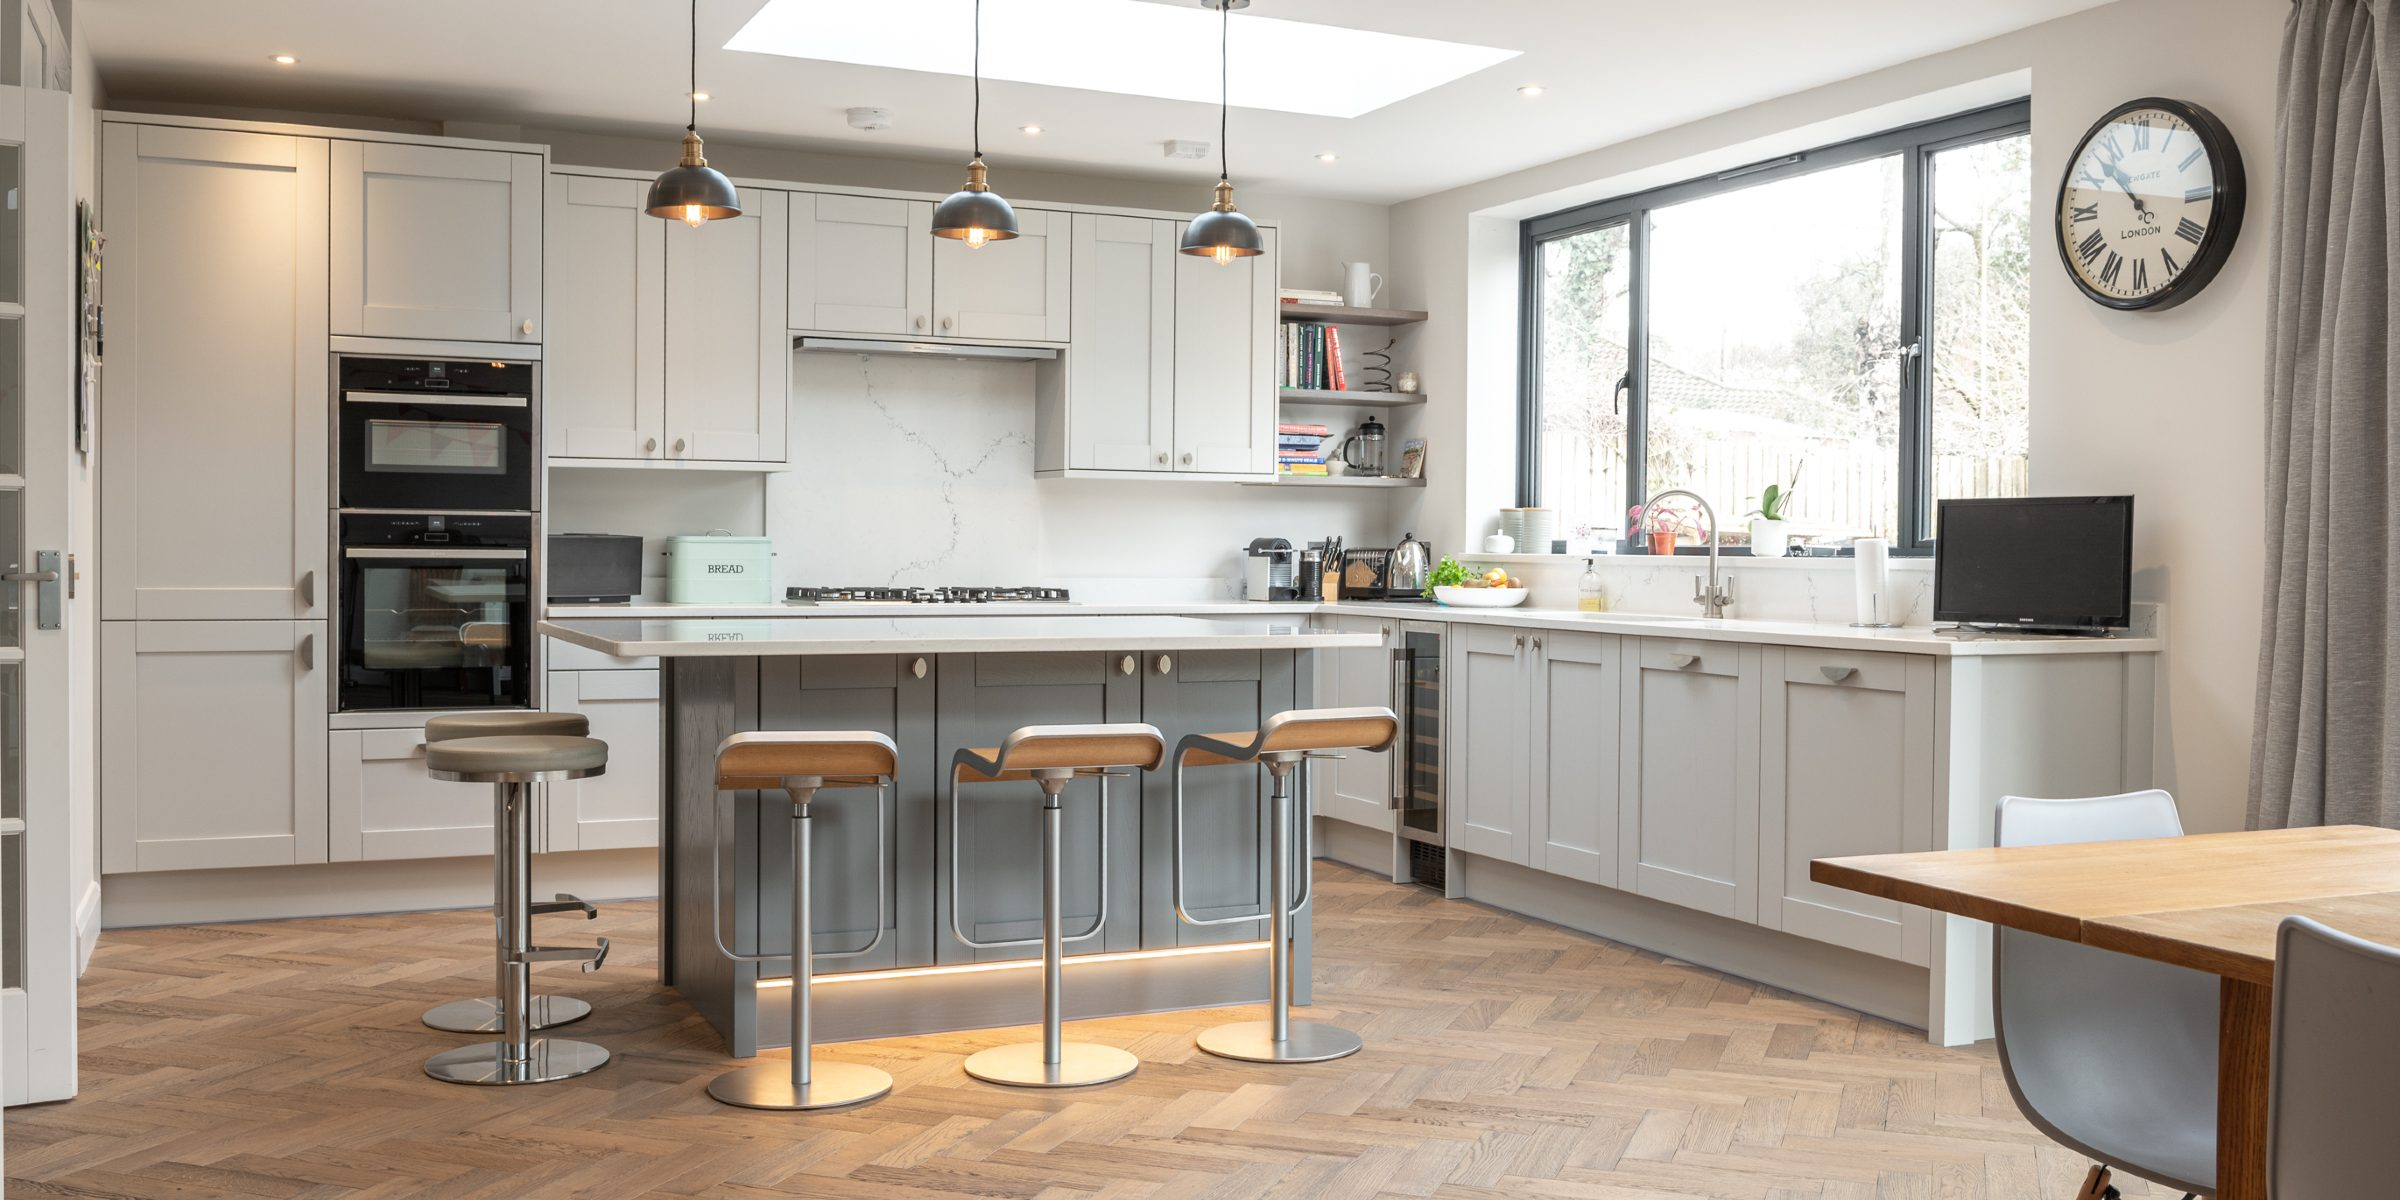 howdens kitchen with herringbone flooring